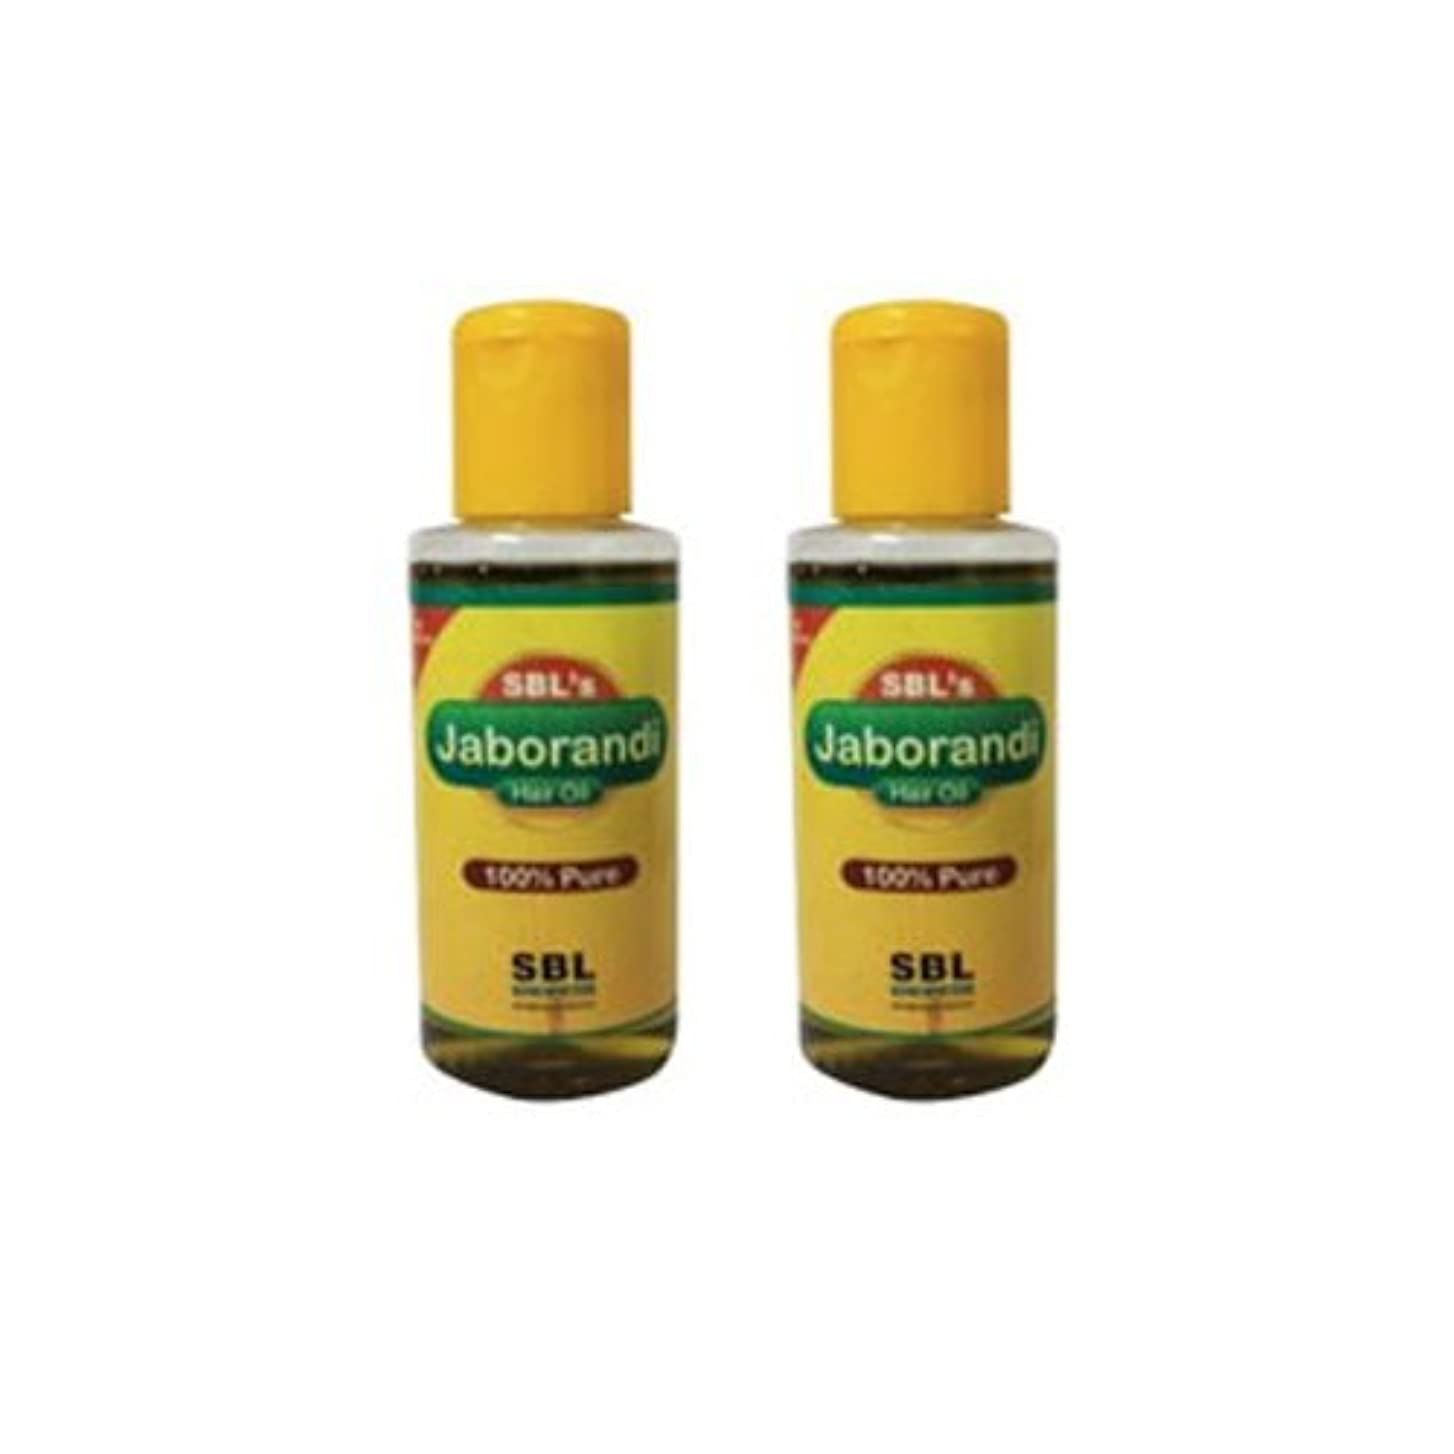 手綱緊急好意2 x Jaborandi Hair Oil. Shipping Only By - USPS / FedEX by SBL